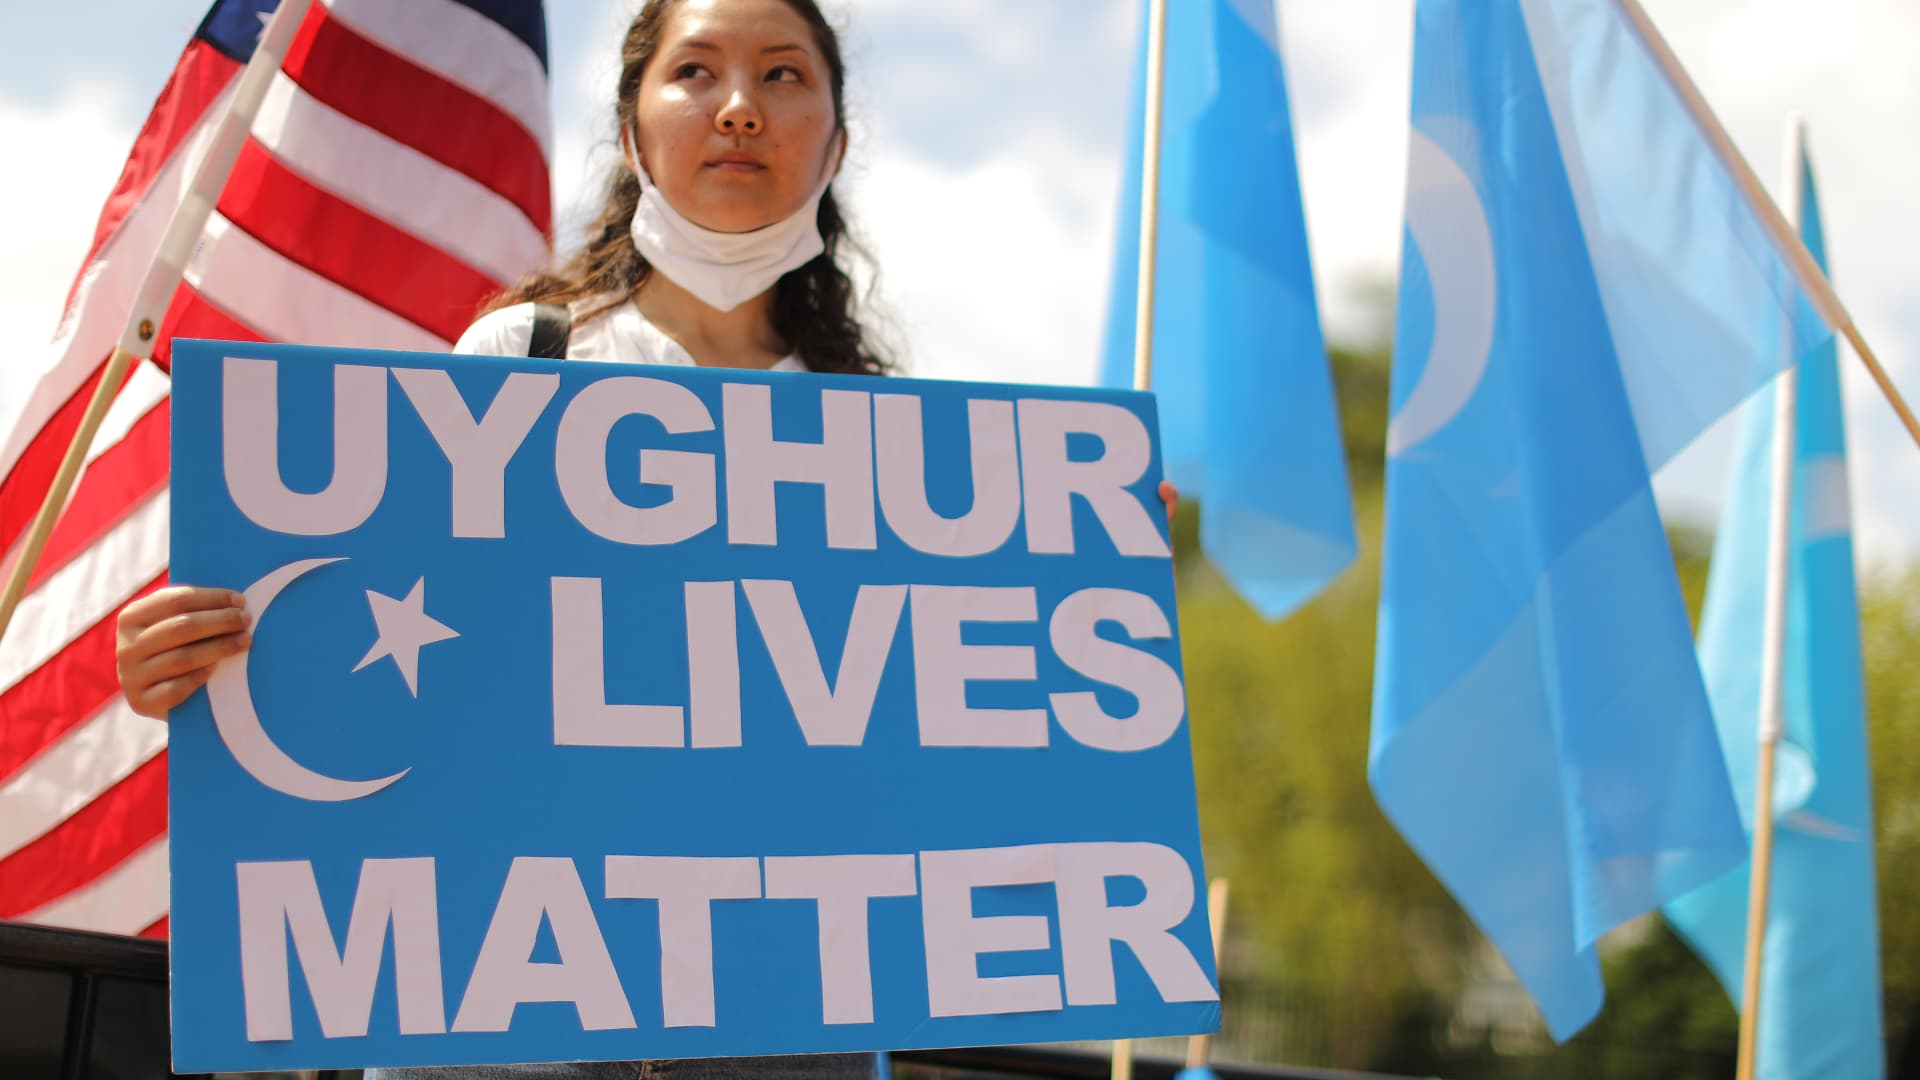 A protester outside the White House urges the United States to take action to stop the oppression of the Uyghur and other Turkic peoples, on August 14, 2020 in Washington, DC.